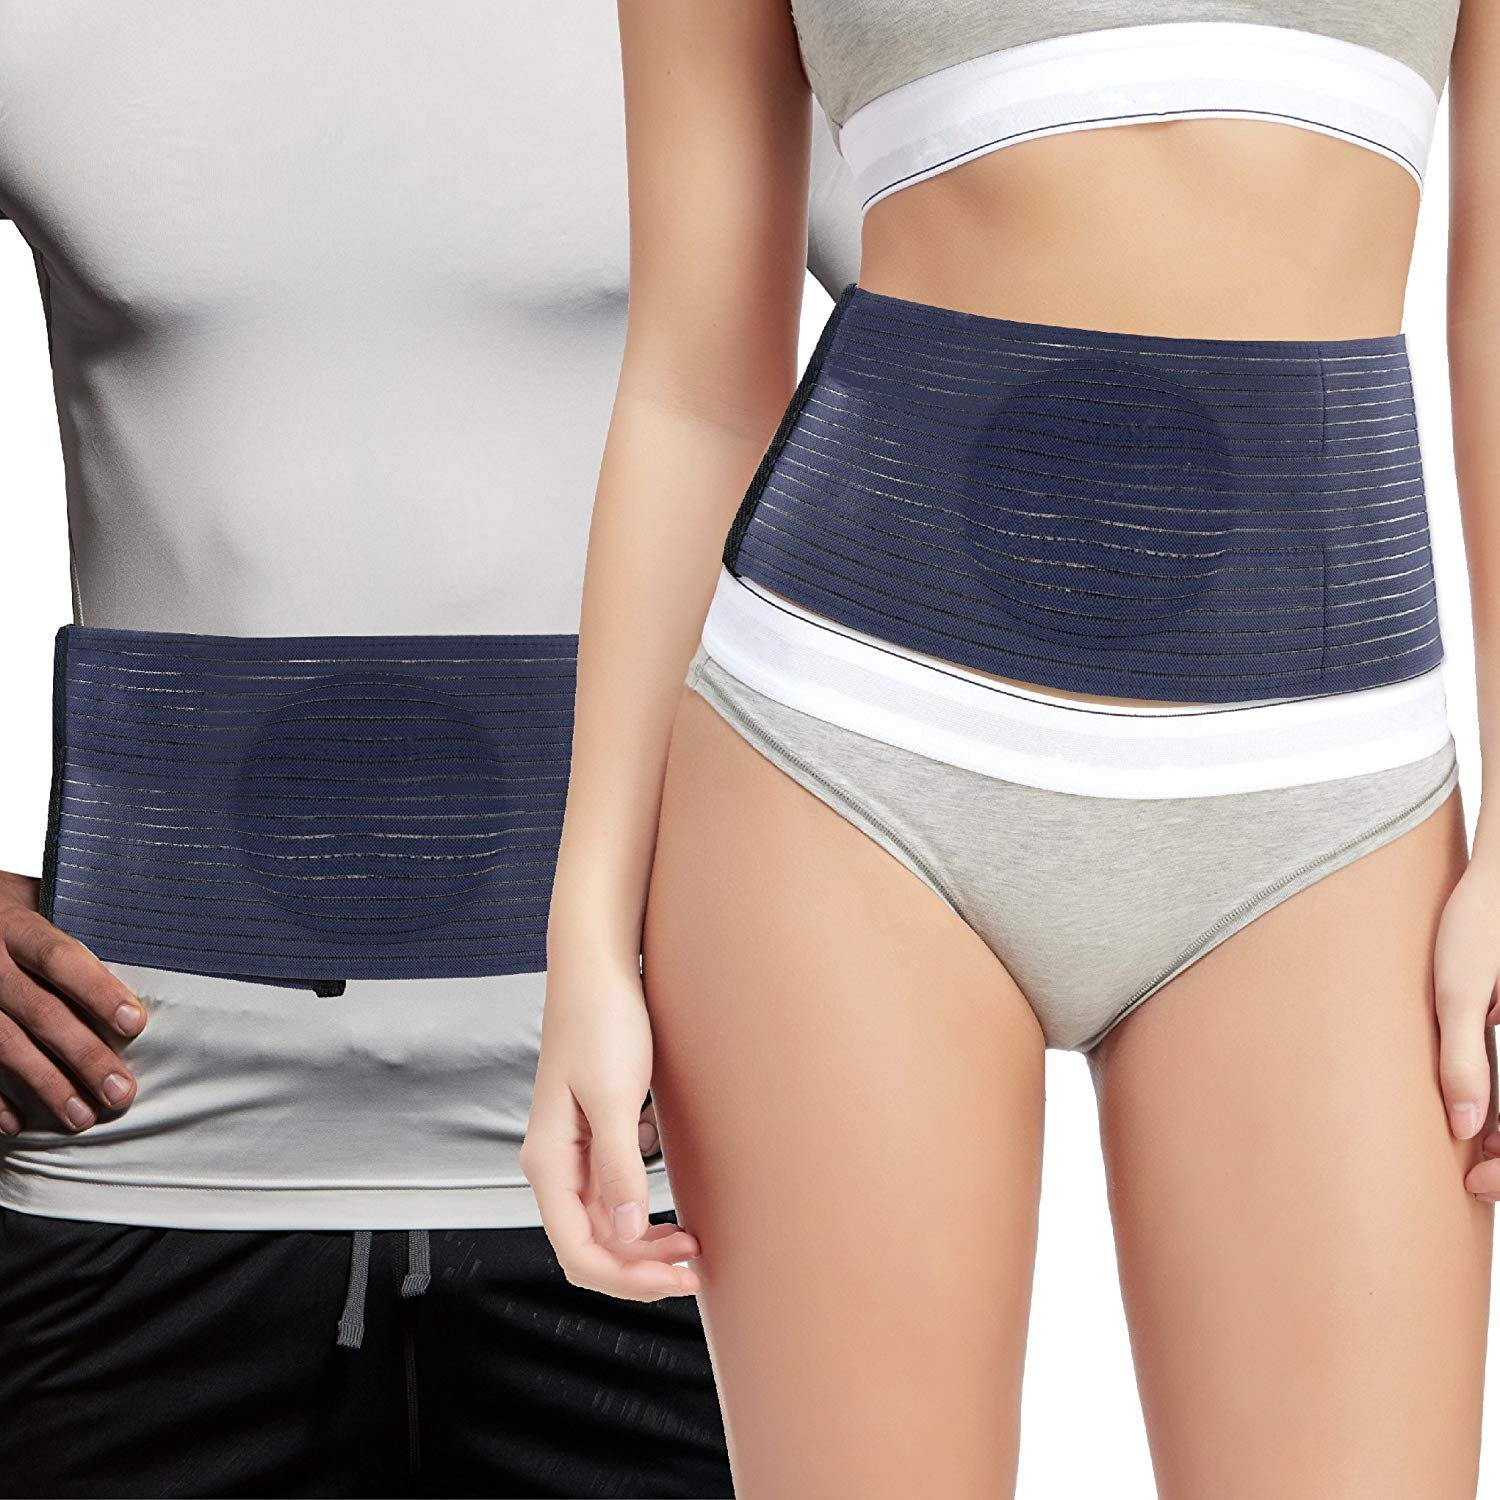 Everyday Medical Umbilical Hernia Belt - for Women and Men – Abdominal Hernia Binder for Belly Button Navel Hernia Support, Helps Relieve Pain - for Incisional, Epigastric, Ventral, Inguinal Hernia